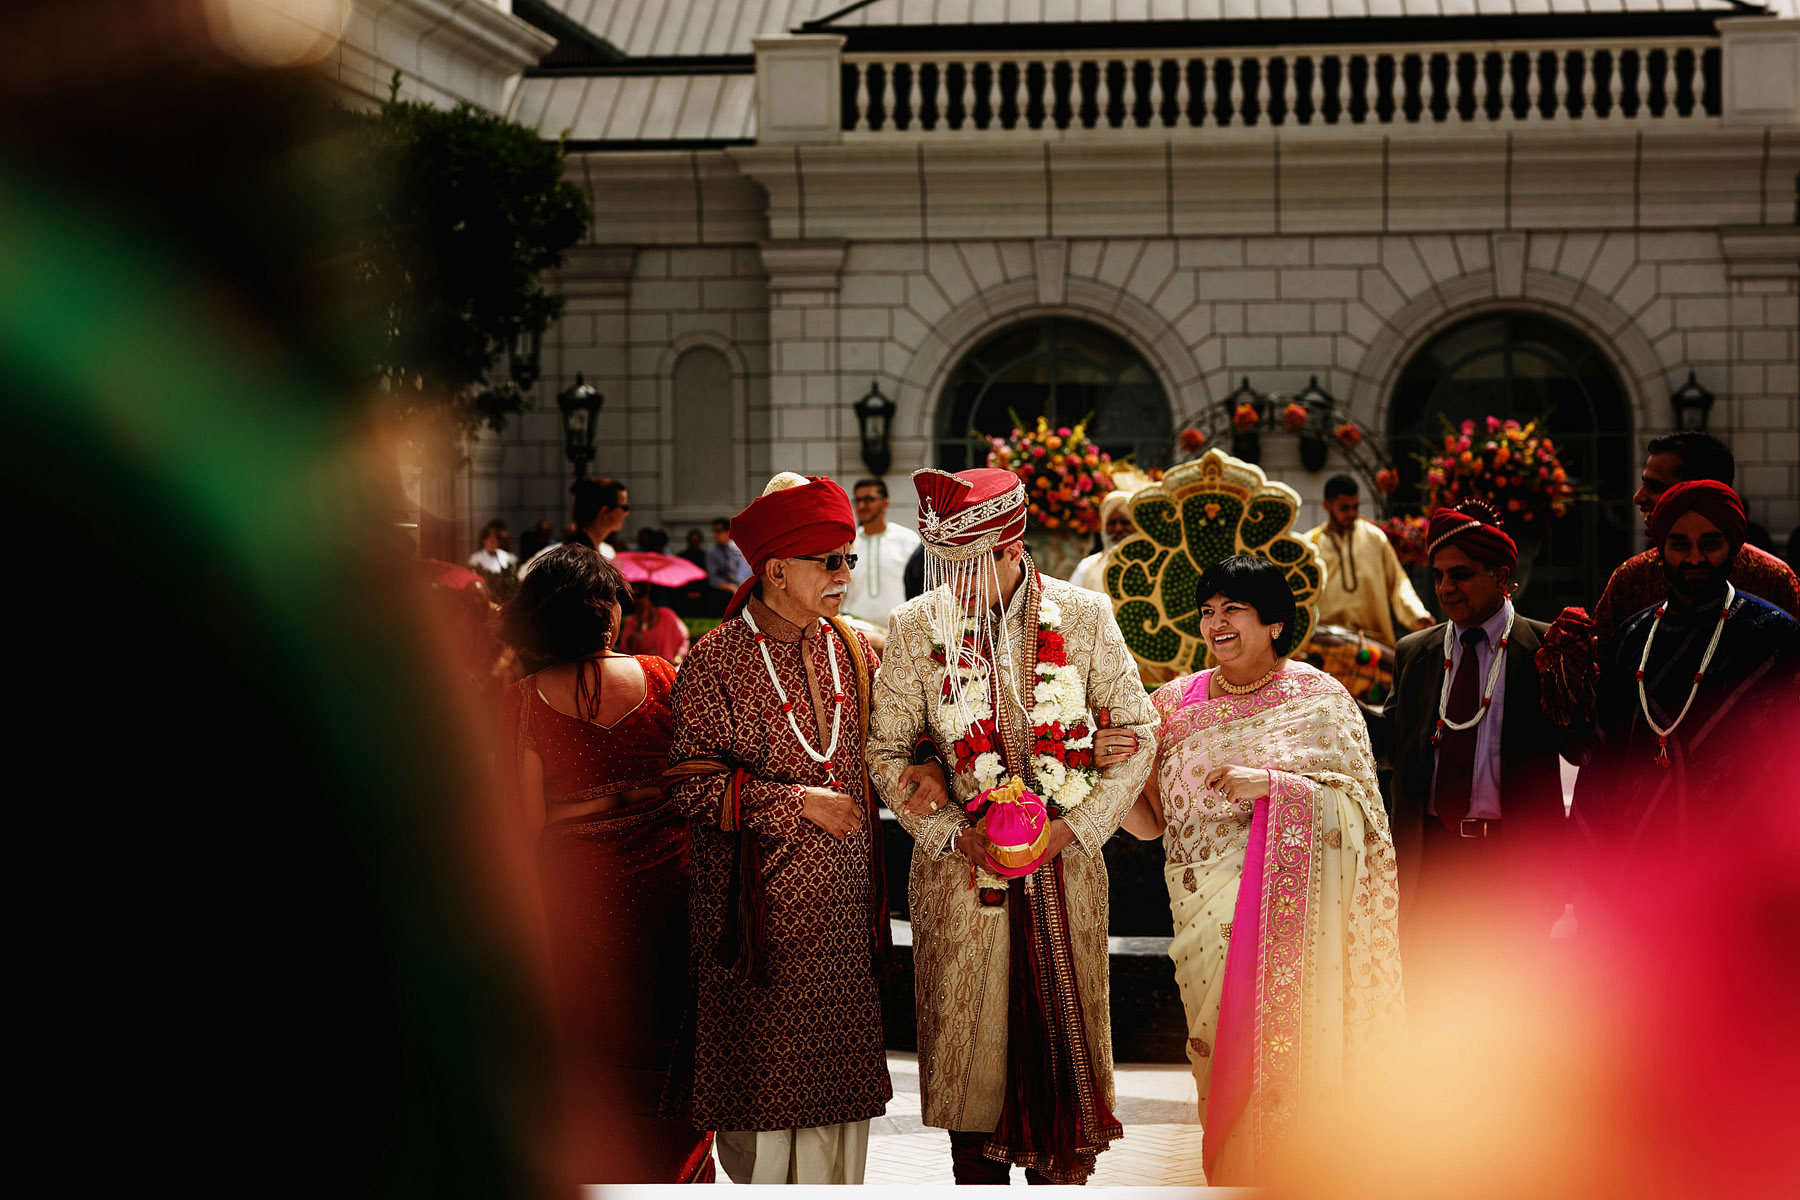 groom-and-family-arriving-at-ceremony-by-rahul-khona